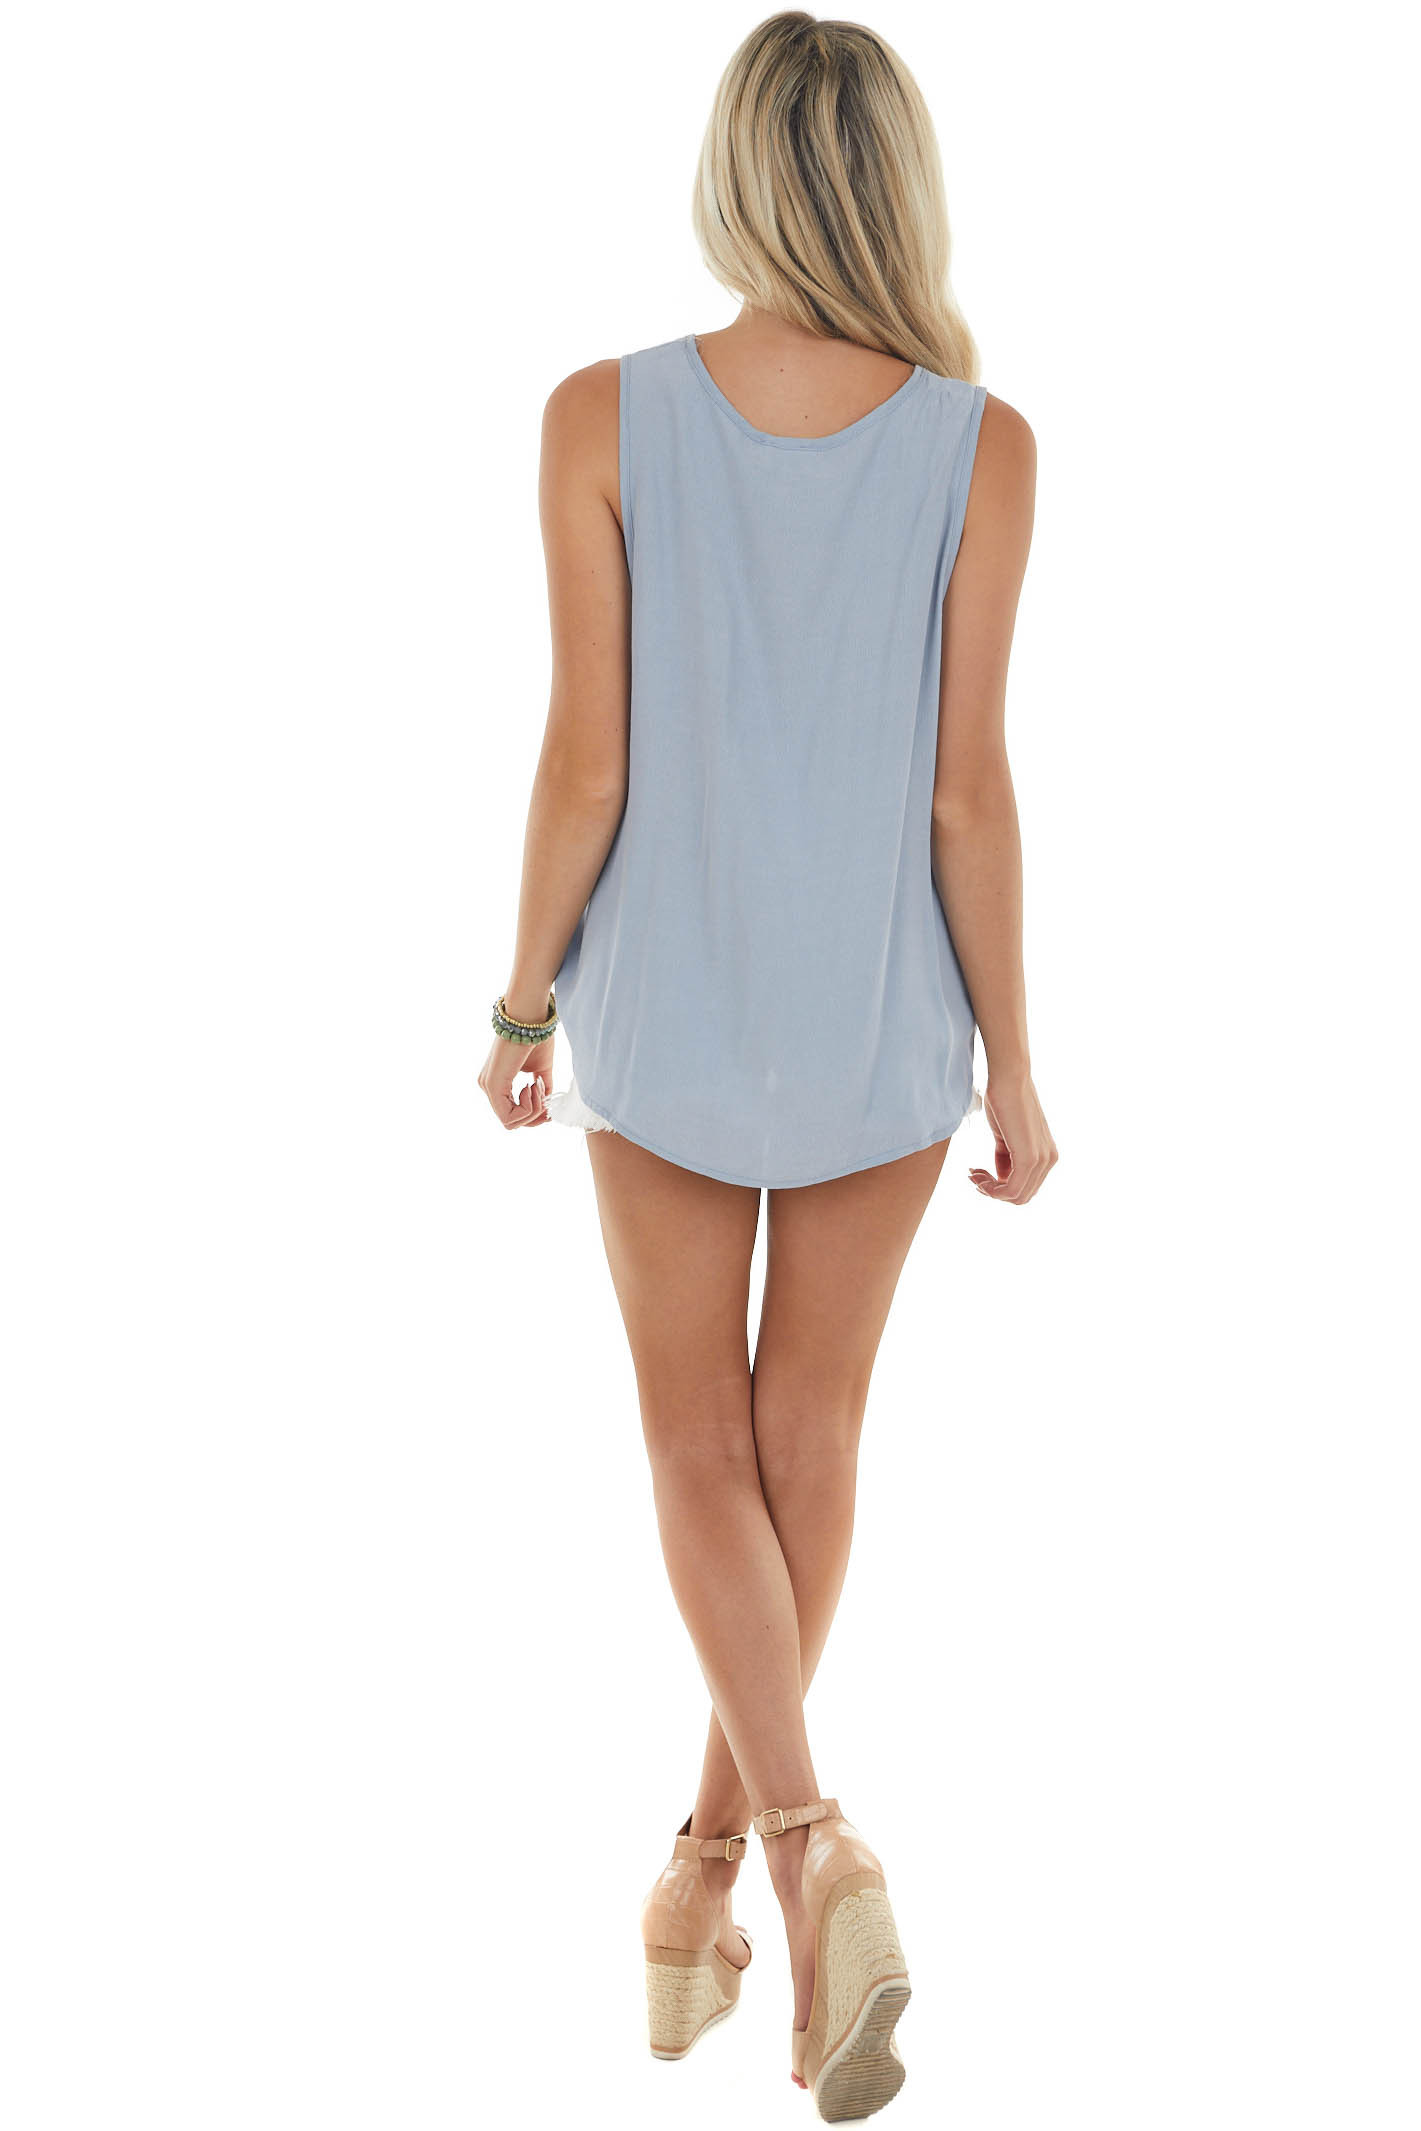 Powder Blue Surplice Tank Top with Cut Out